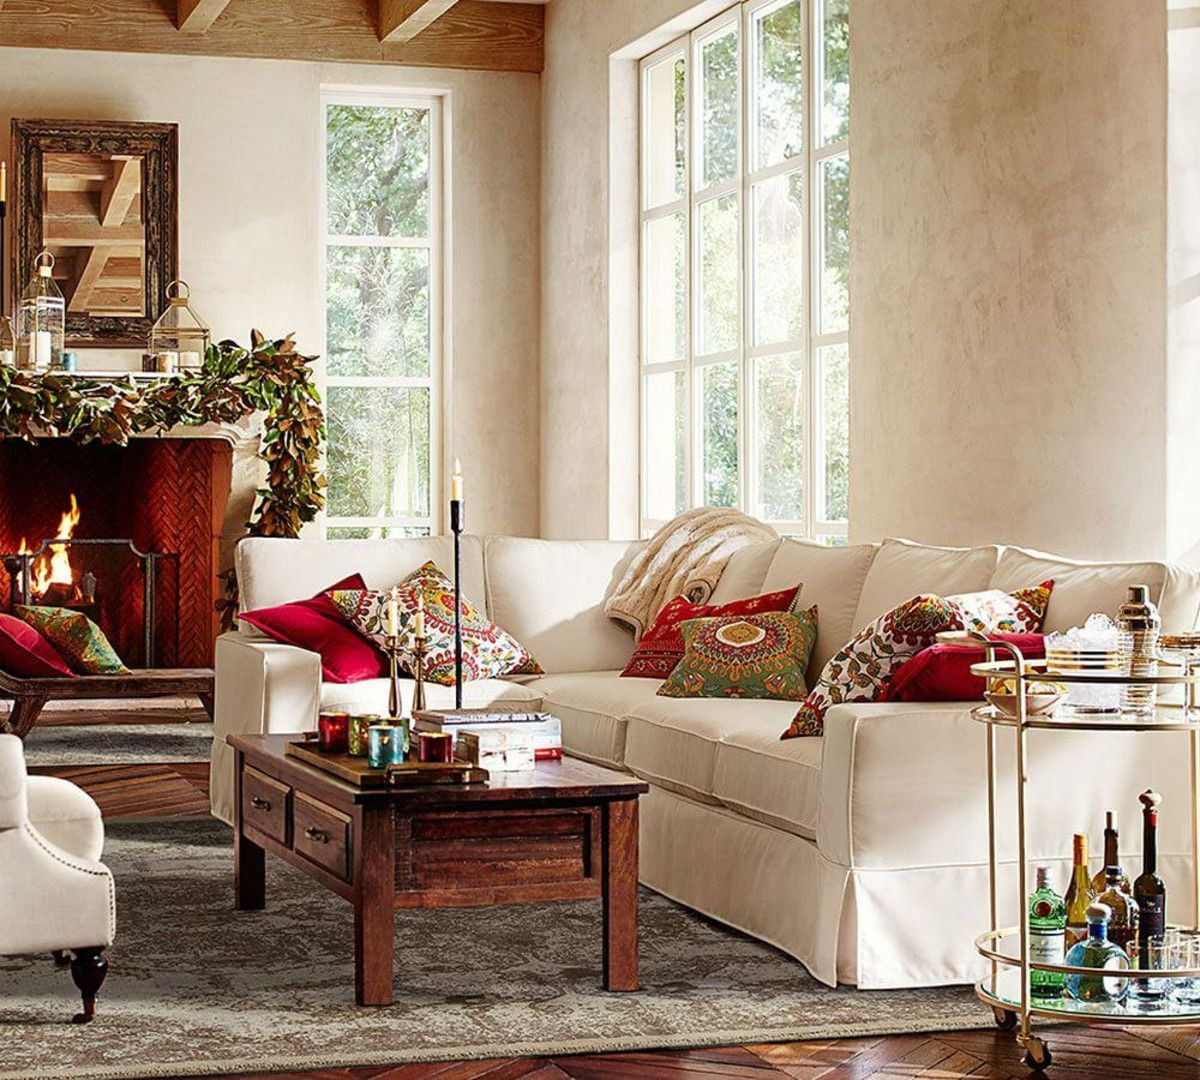 pottery barn wall vase of living room stylish pottery barn living room have furniture sofa for living room stylish pottery barn living room have furniture sofa sets with floor lamp grey curtains lampshade on nightstand small wall photos painted wall